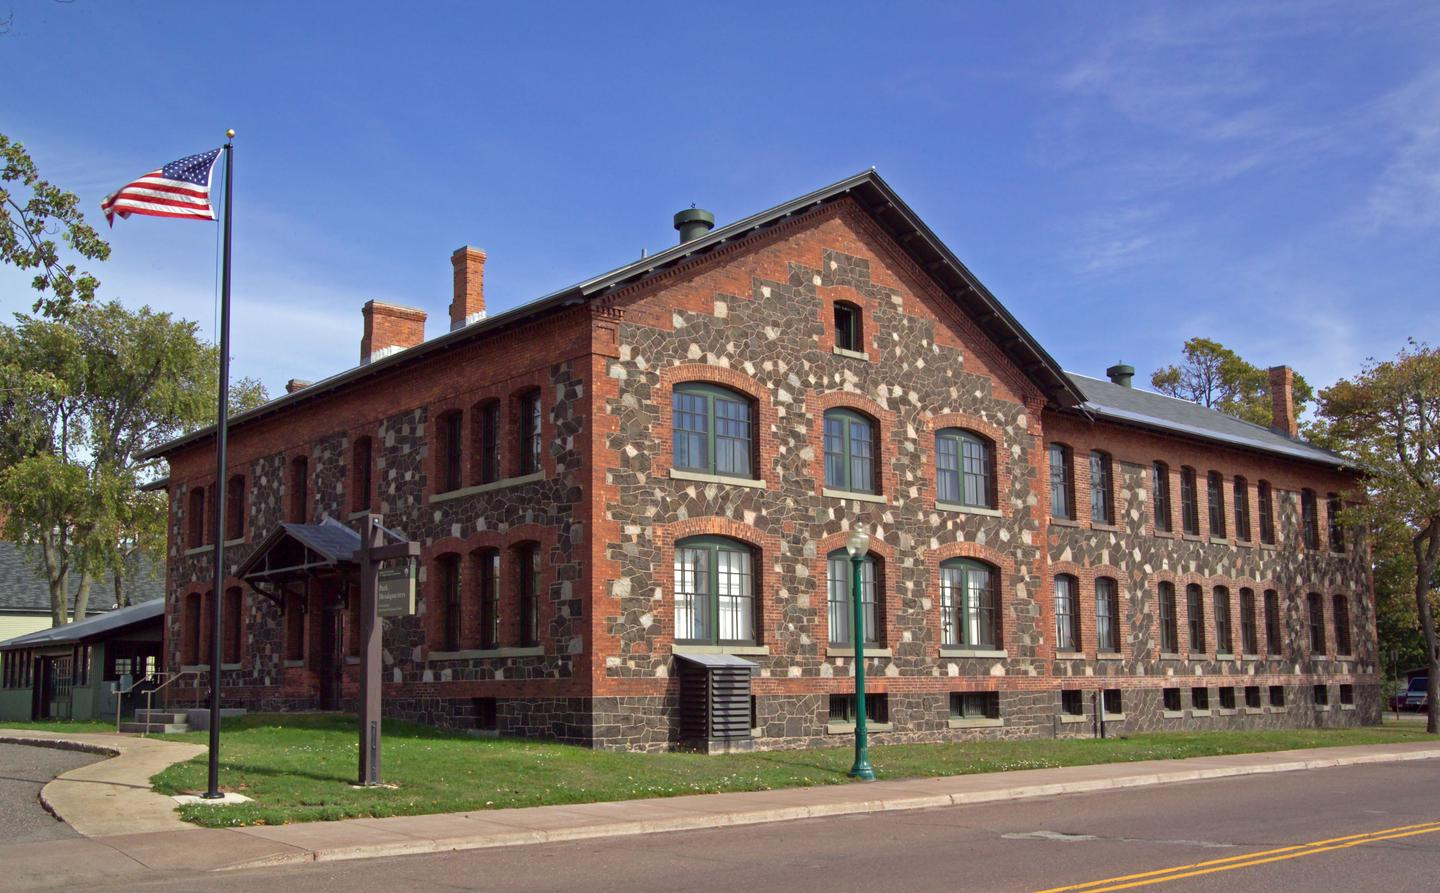 Keweenaw NHP HeadquartersPark Headquarters is housed in the former Calumet & Hecla Mining Company General Office building.